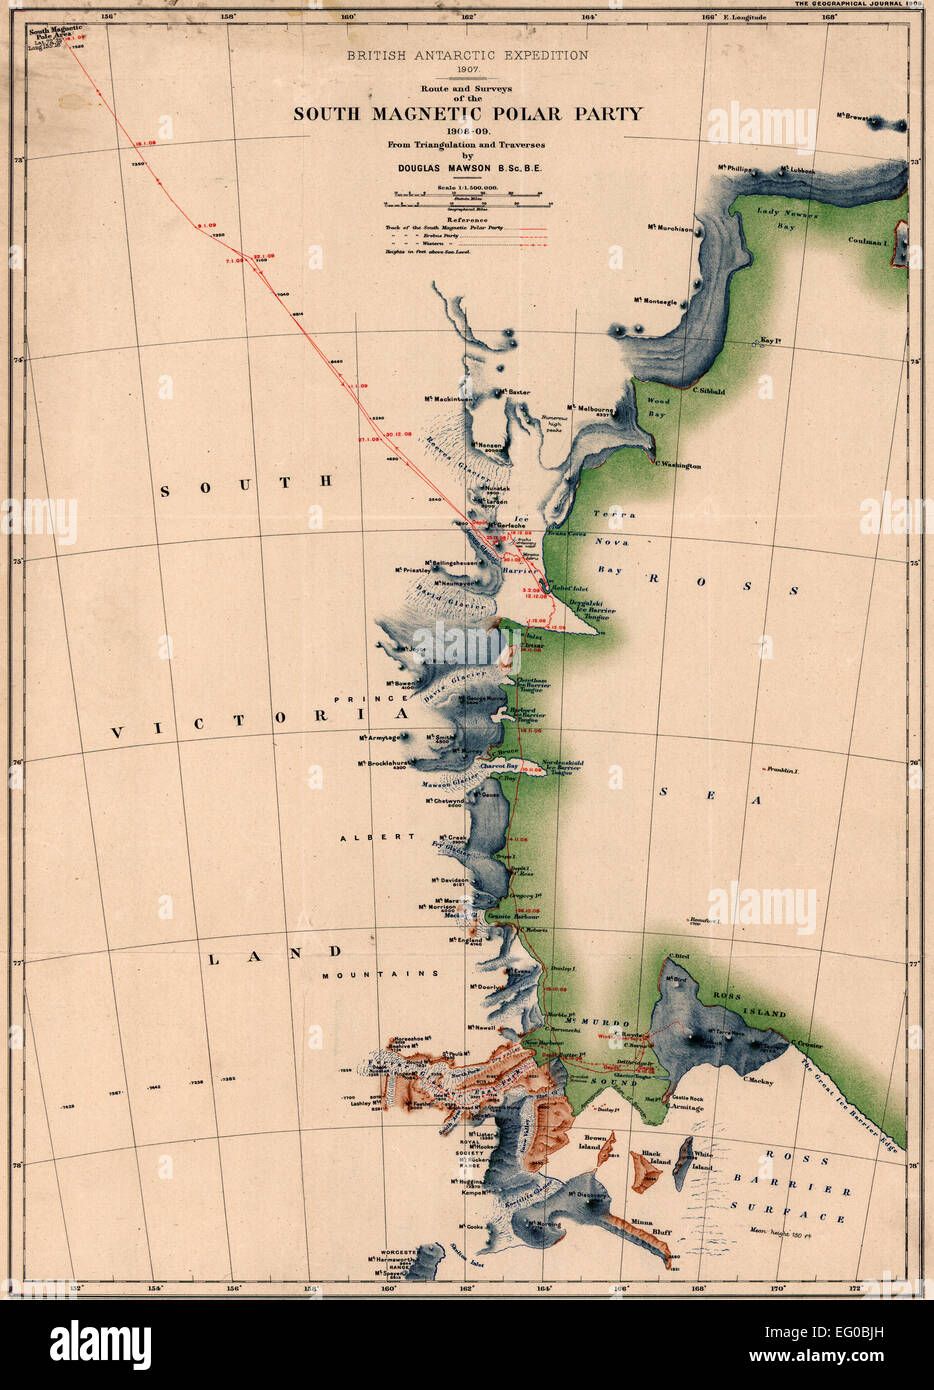 Route and Surveys of the South Magnetic Polar Party, 1908-09.  British Antarctic Expedition--(1907-1909) - Stock Image